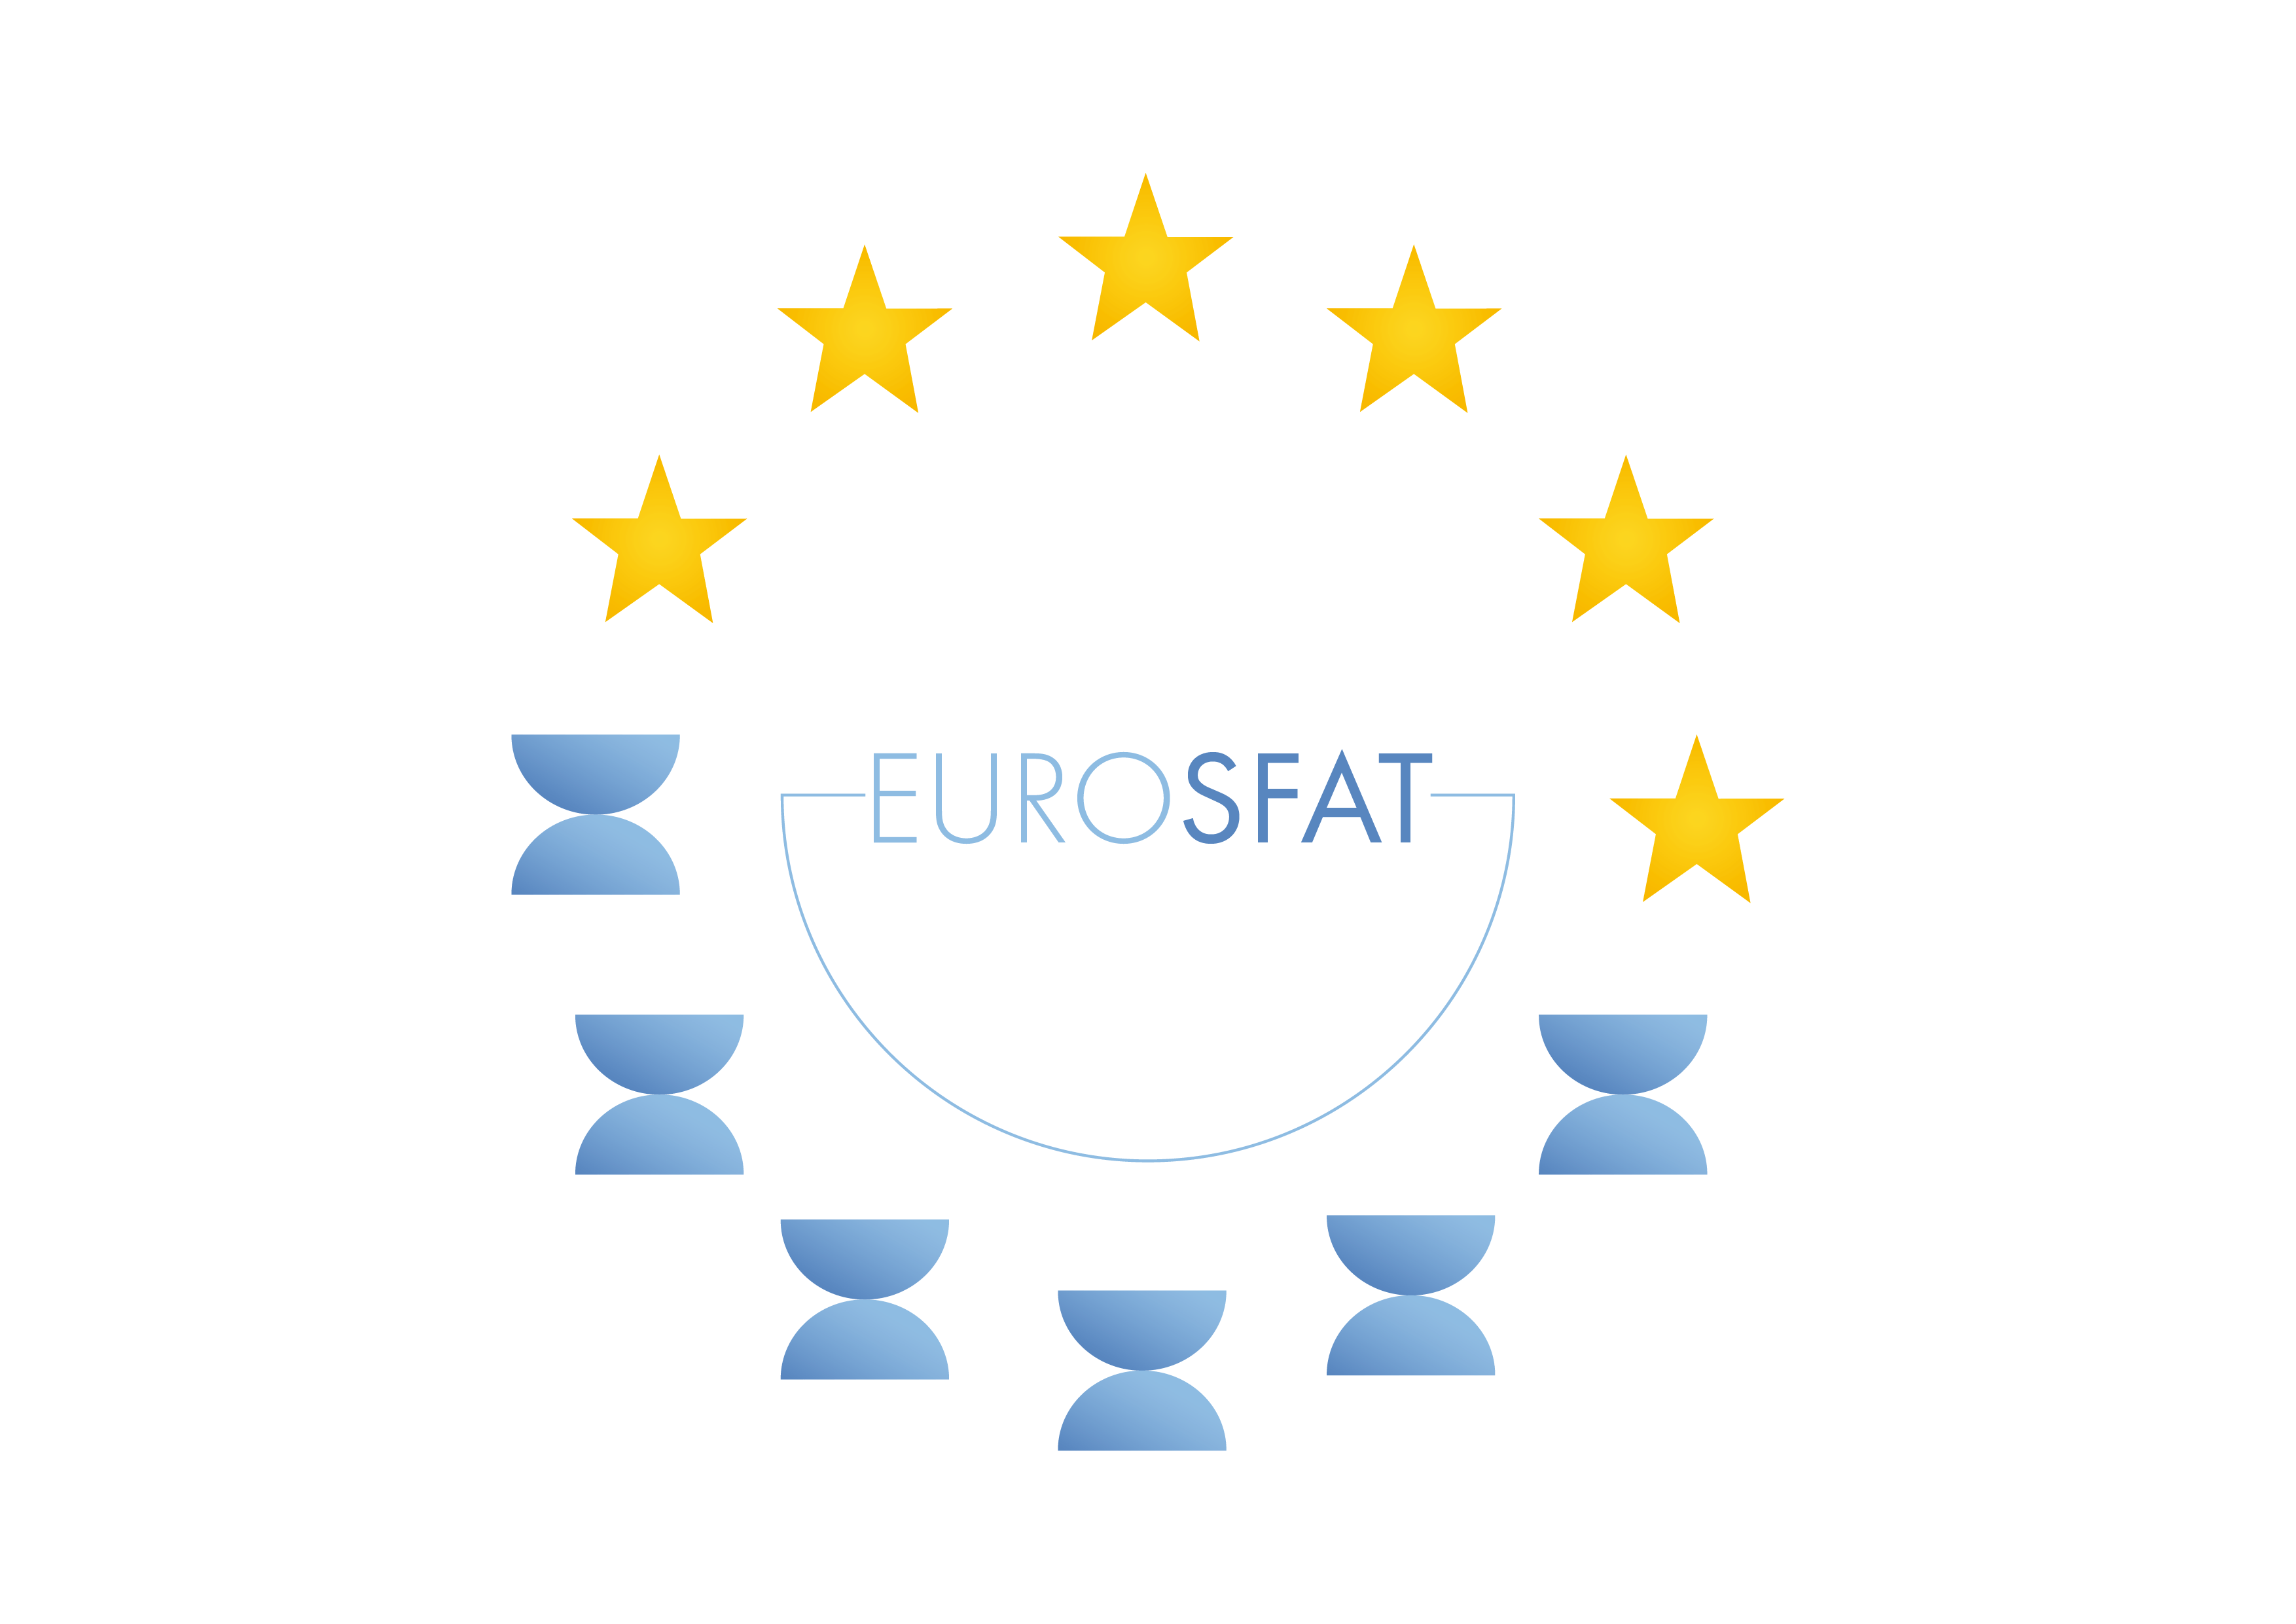 THE 7TH EDITION OF THE EUROSFAT FORUM